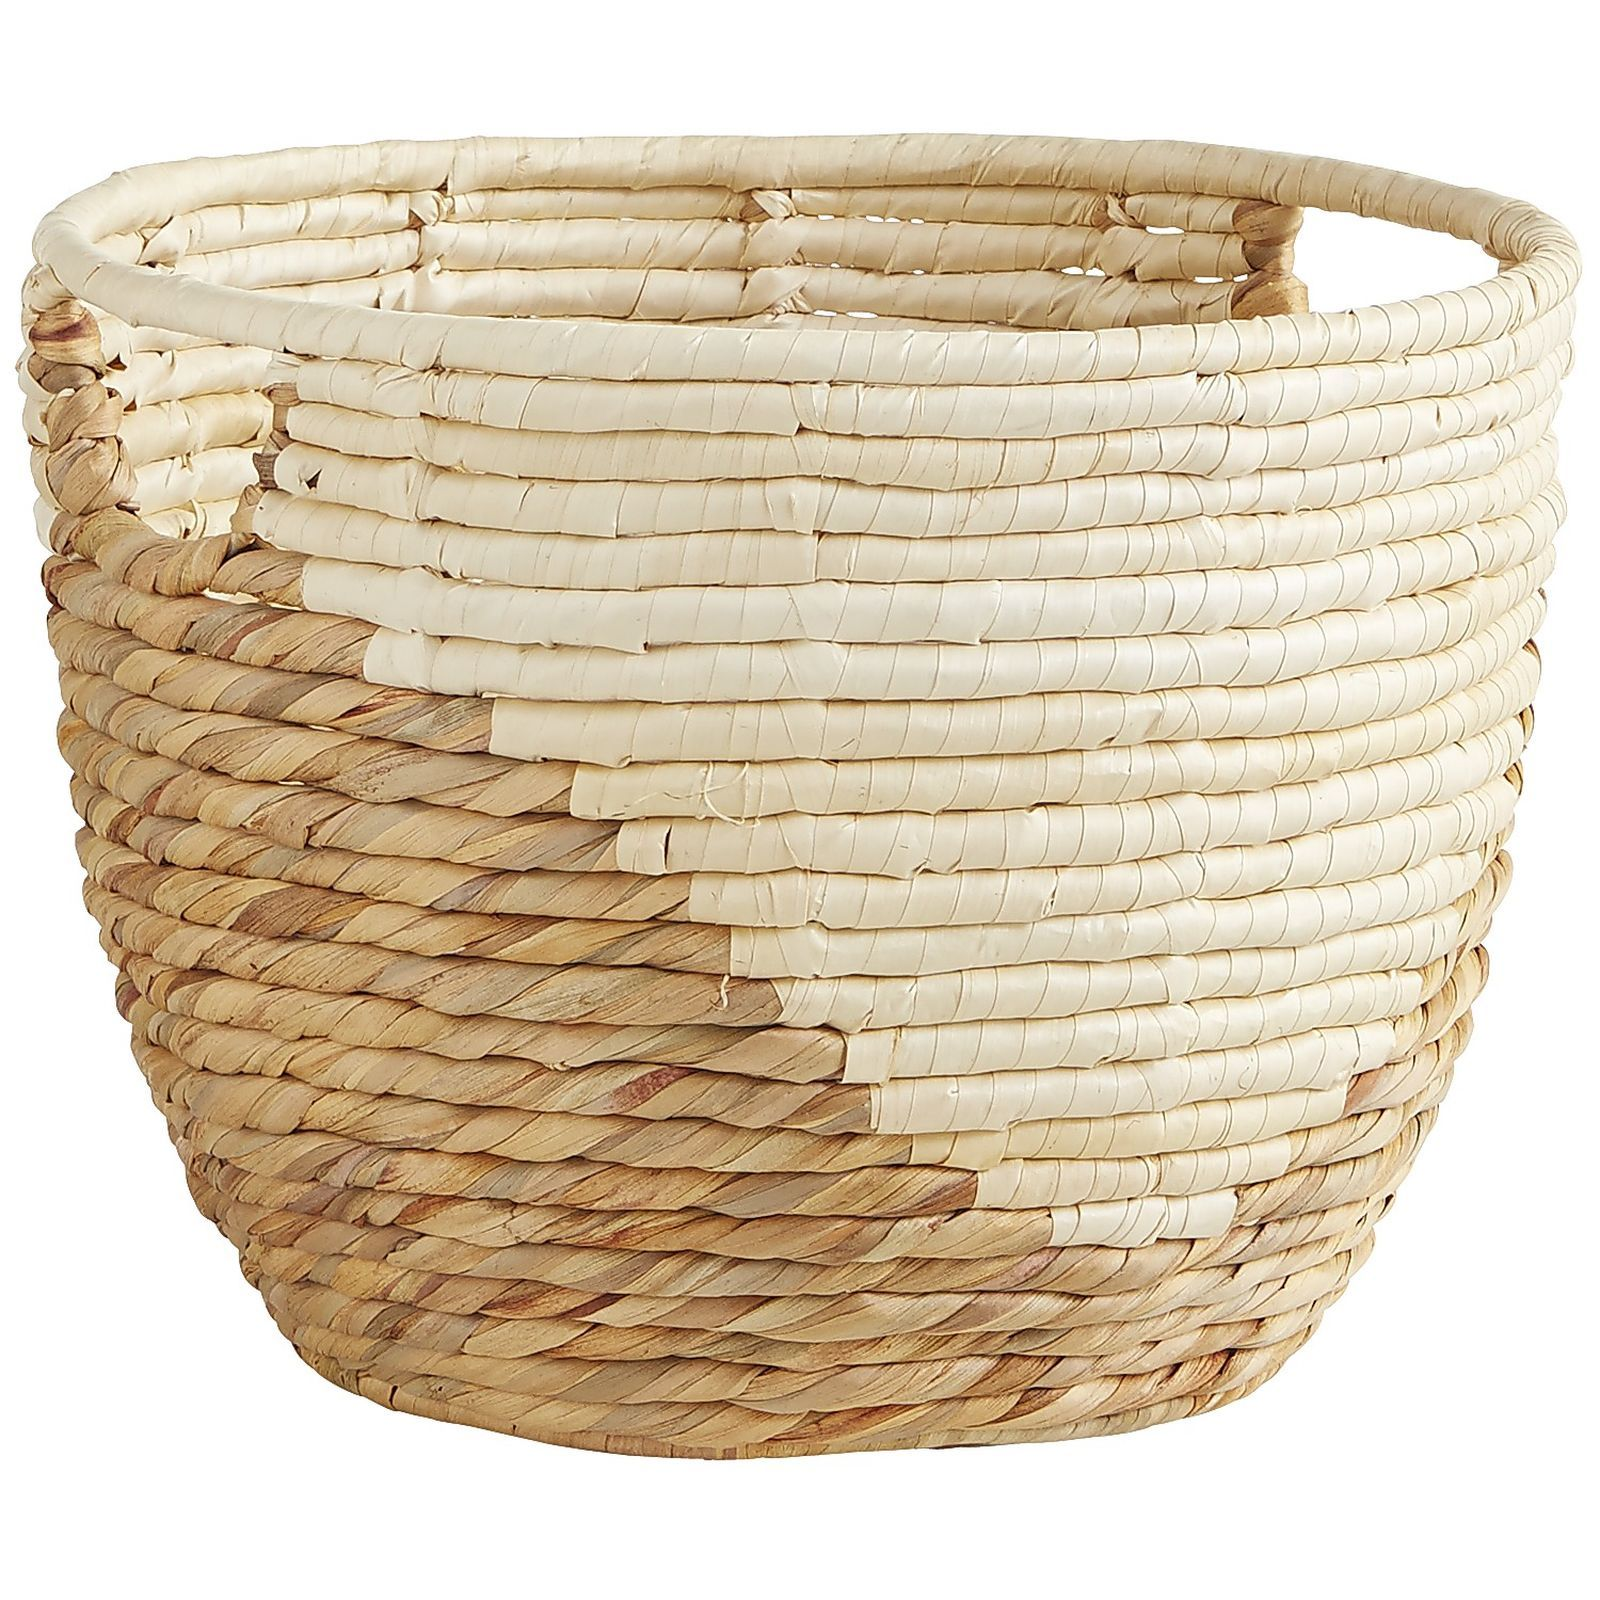 Mila Round Basket Wicker Round Basket Storage Baskets